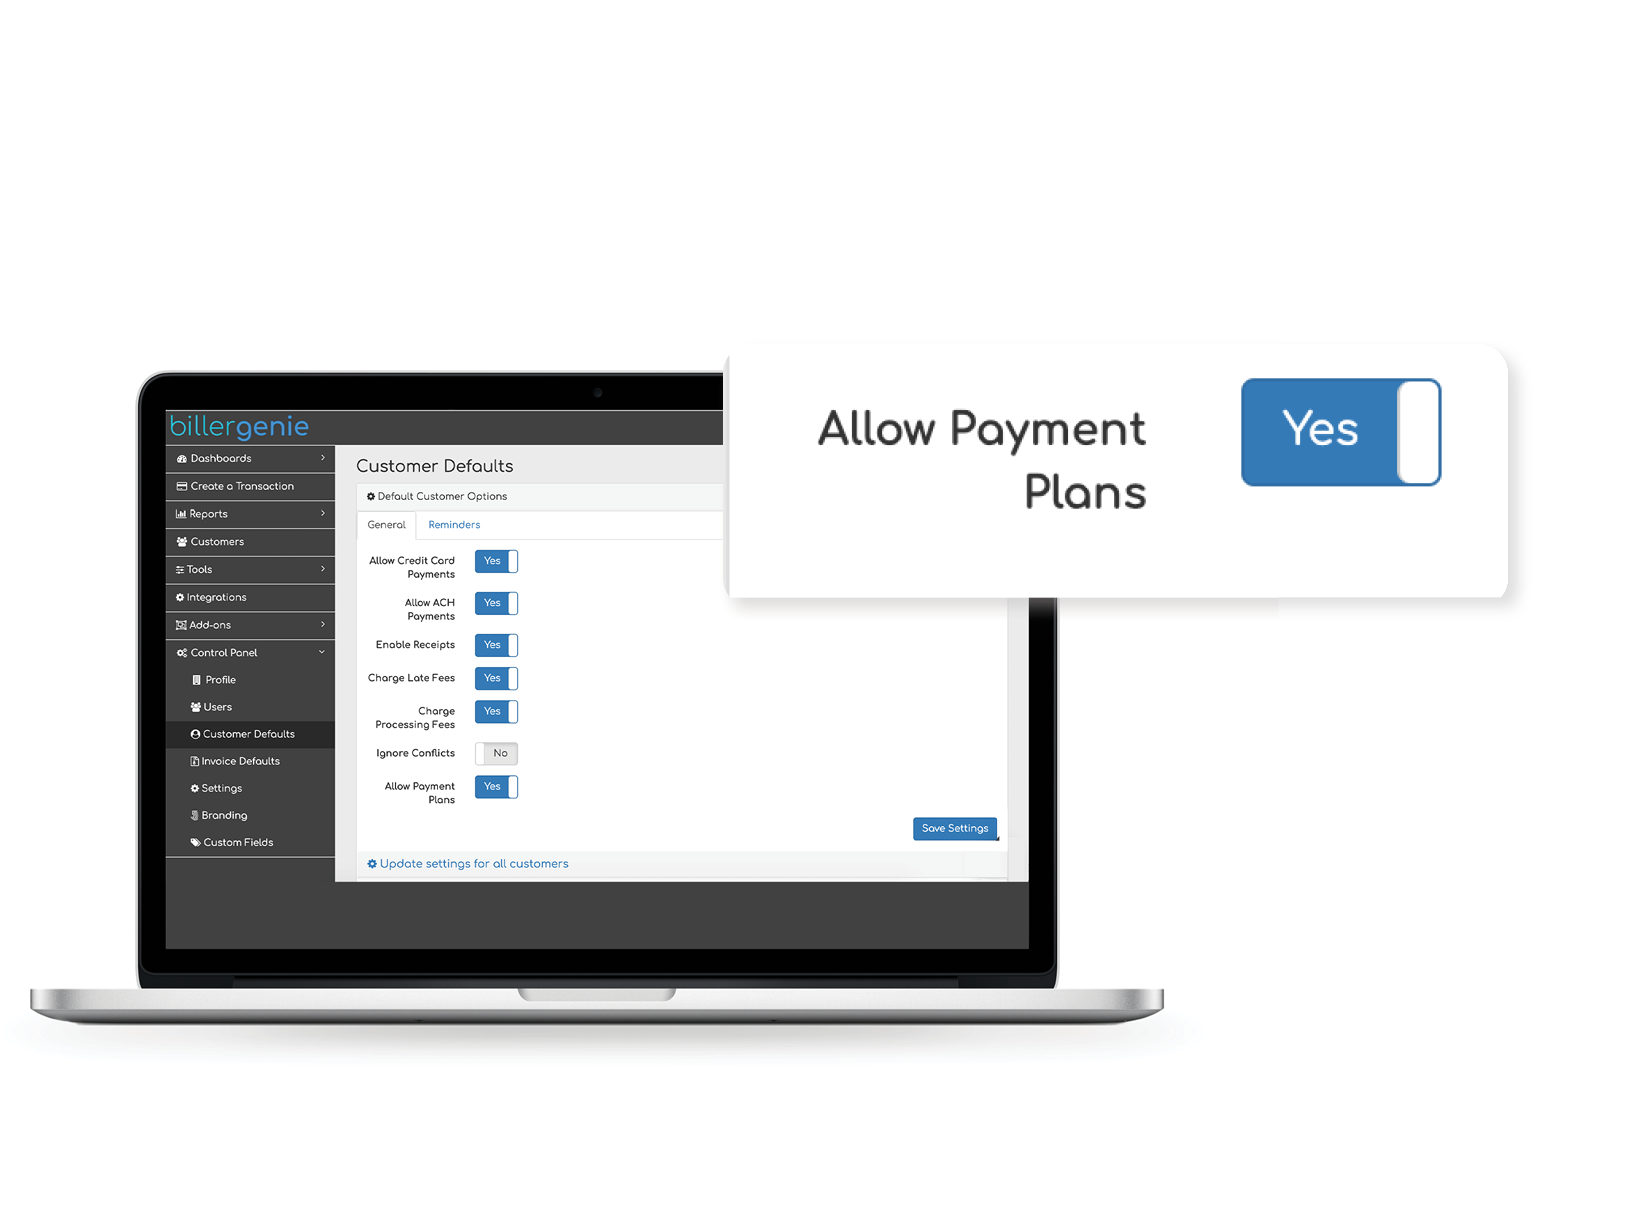 The Payment Planner allows your customers to request payment plans, breaking up larger invoices in smaller, more manageable payments.